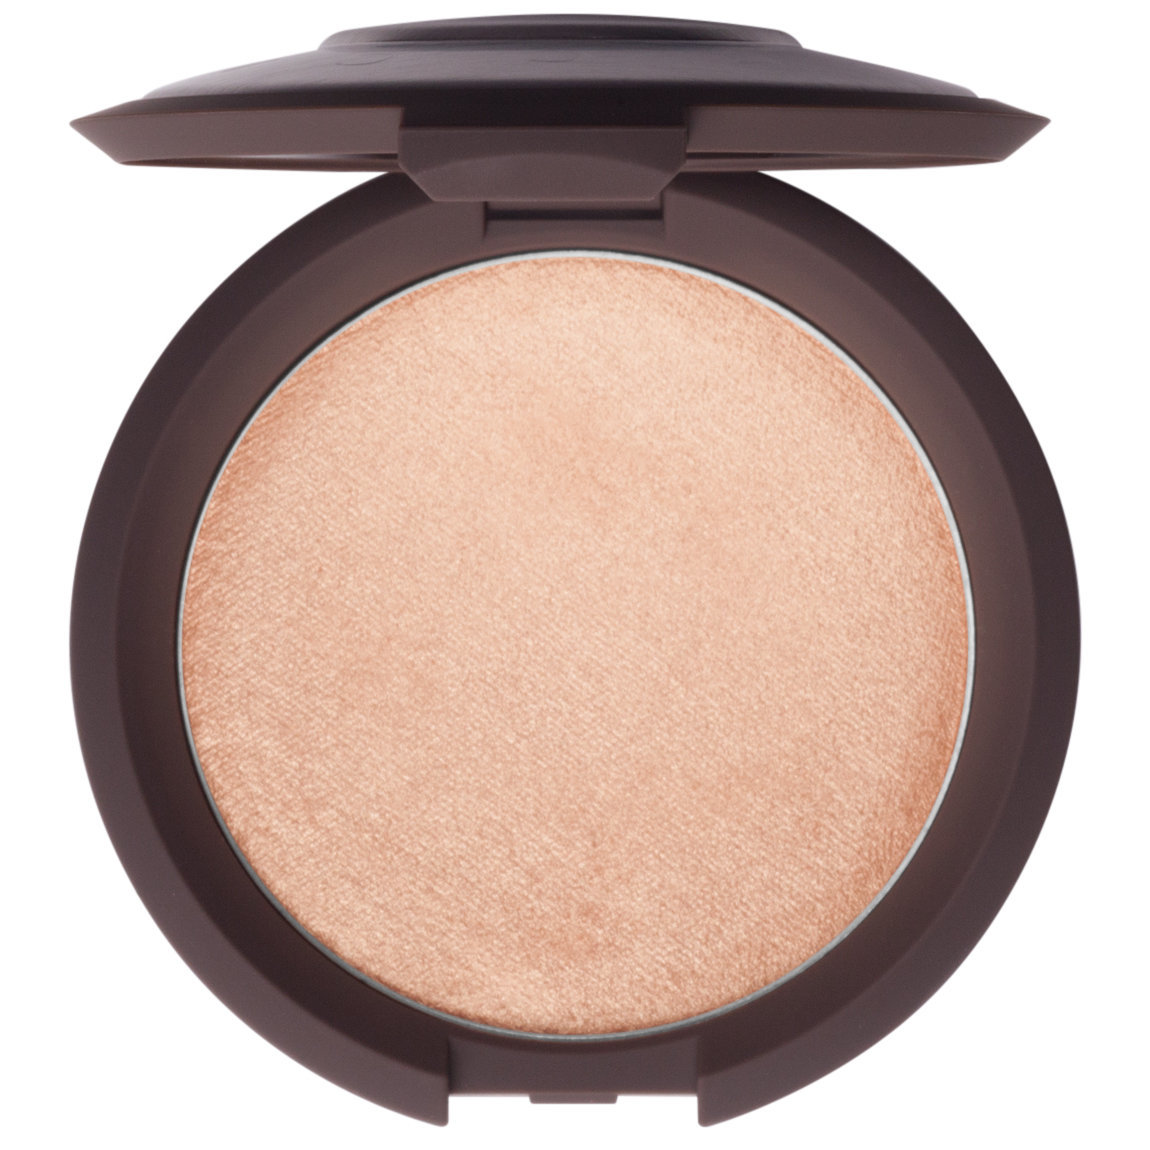 BECCA Shimmering Skin Perfector Pressed Topaz product swatch.